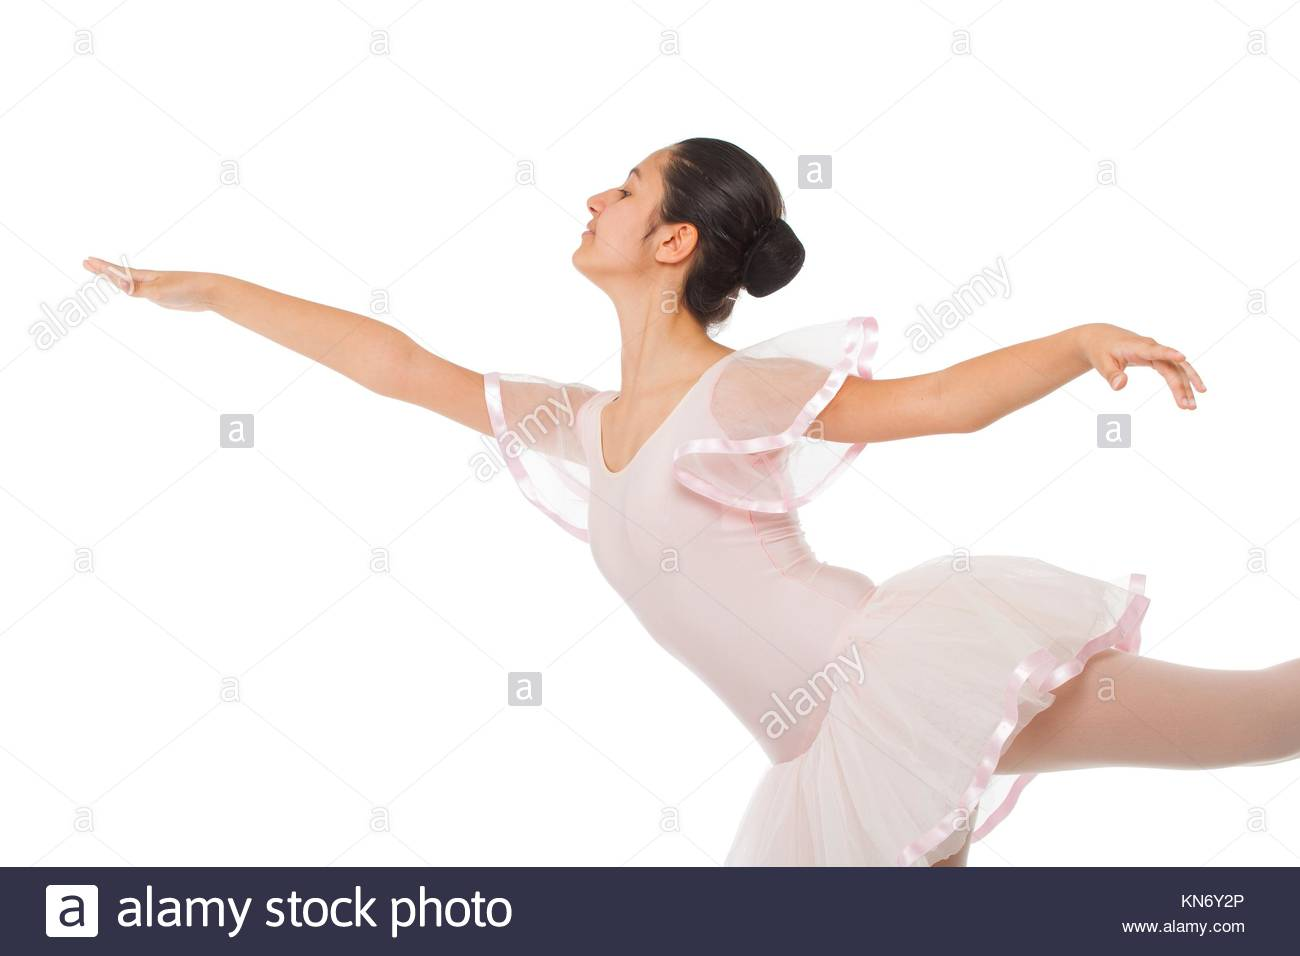 Young ballet dancer isolated on white background. - Stock Image